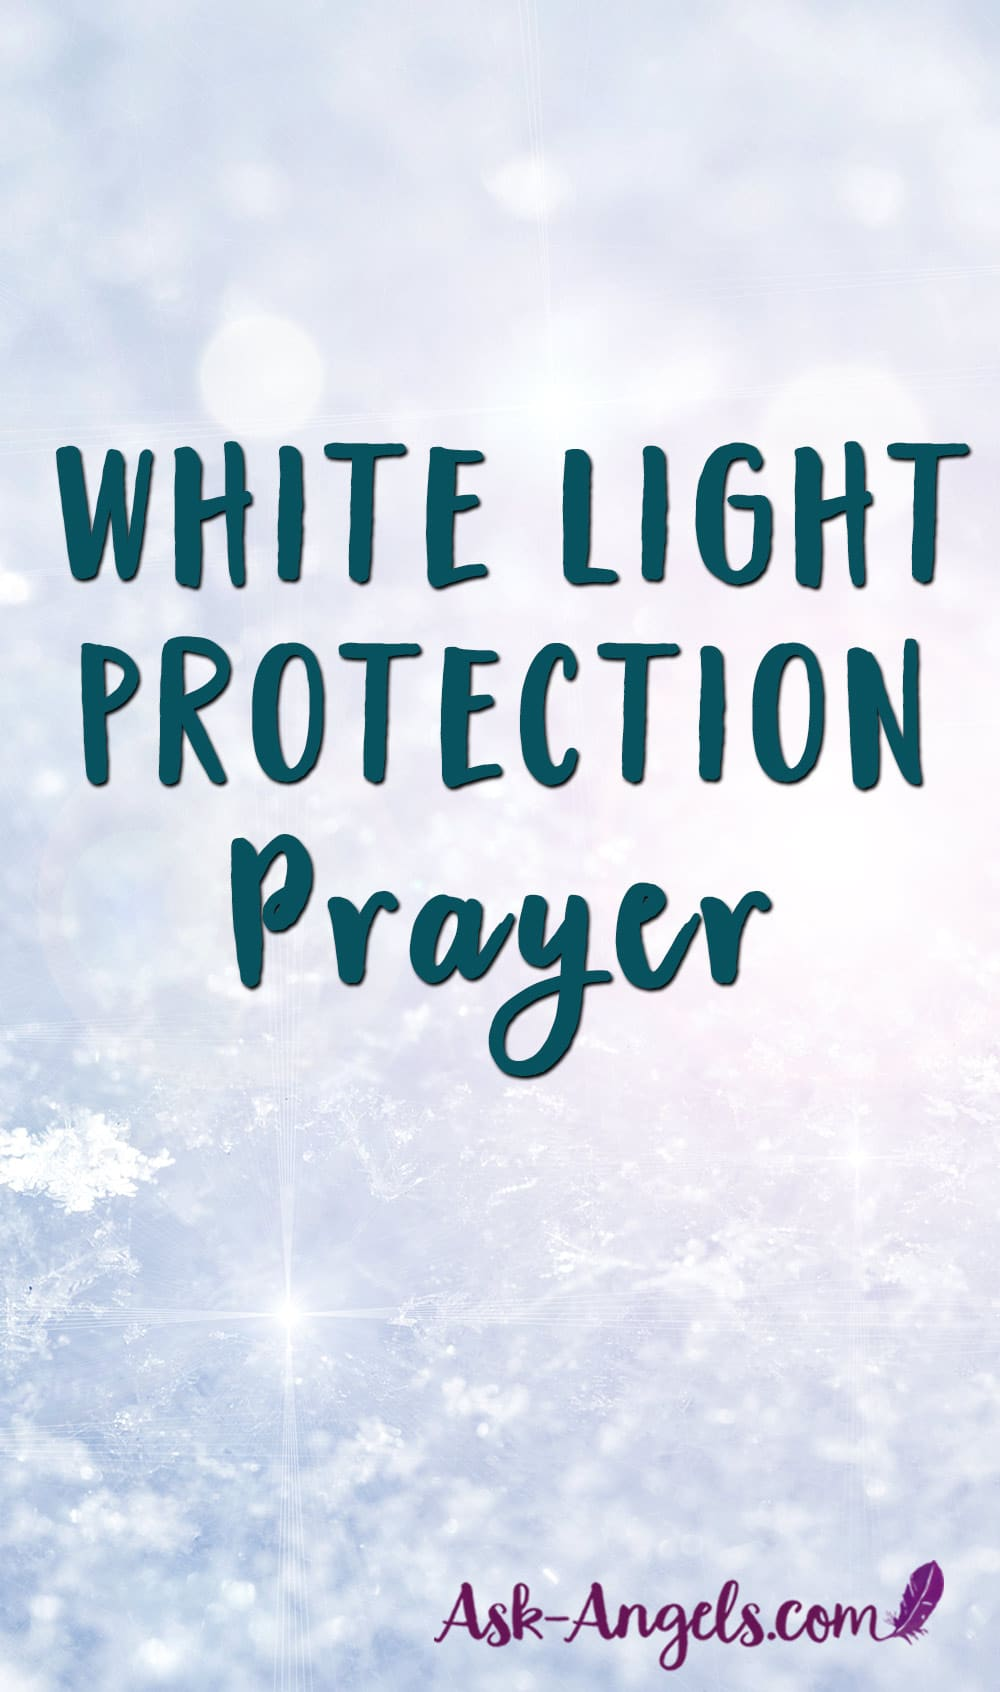 White Light Protection Prayer - Cleanse, Protect, and Raise